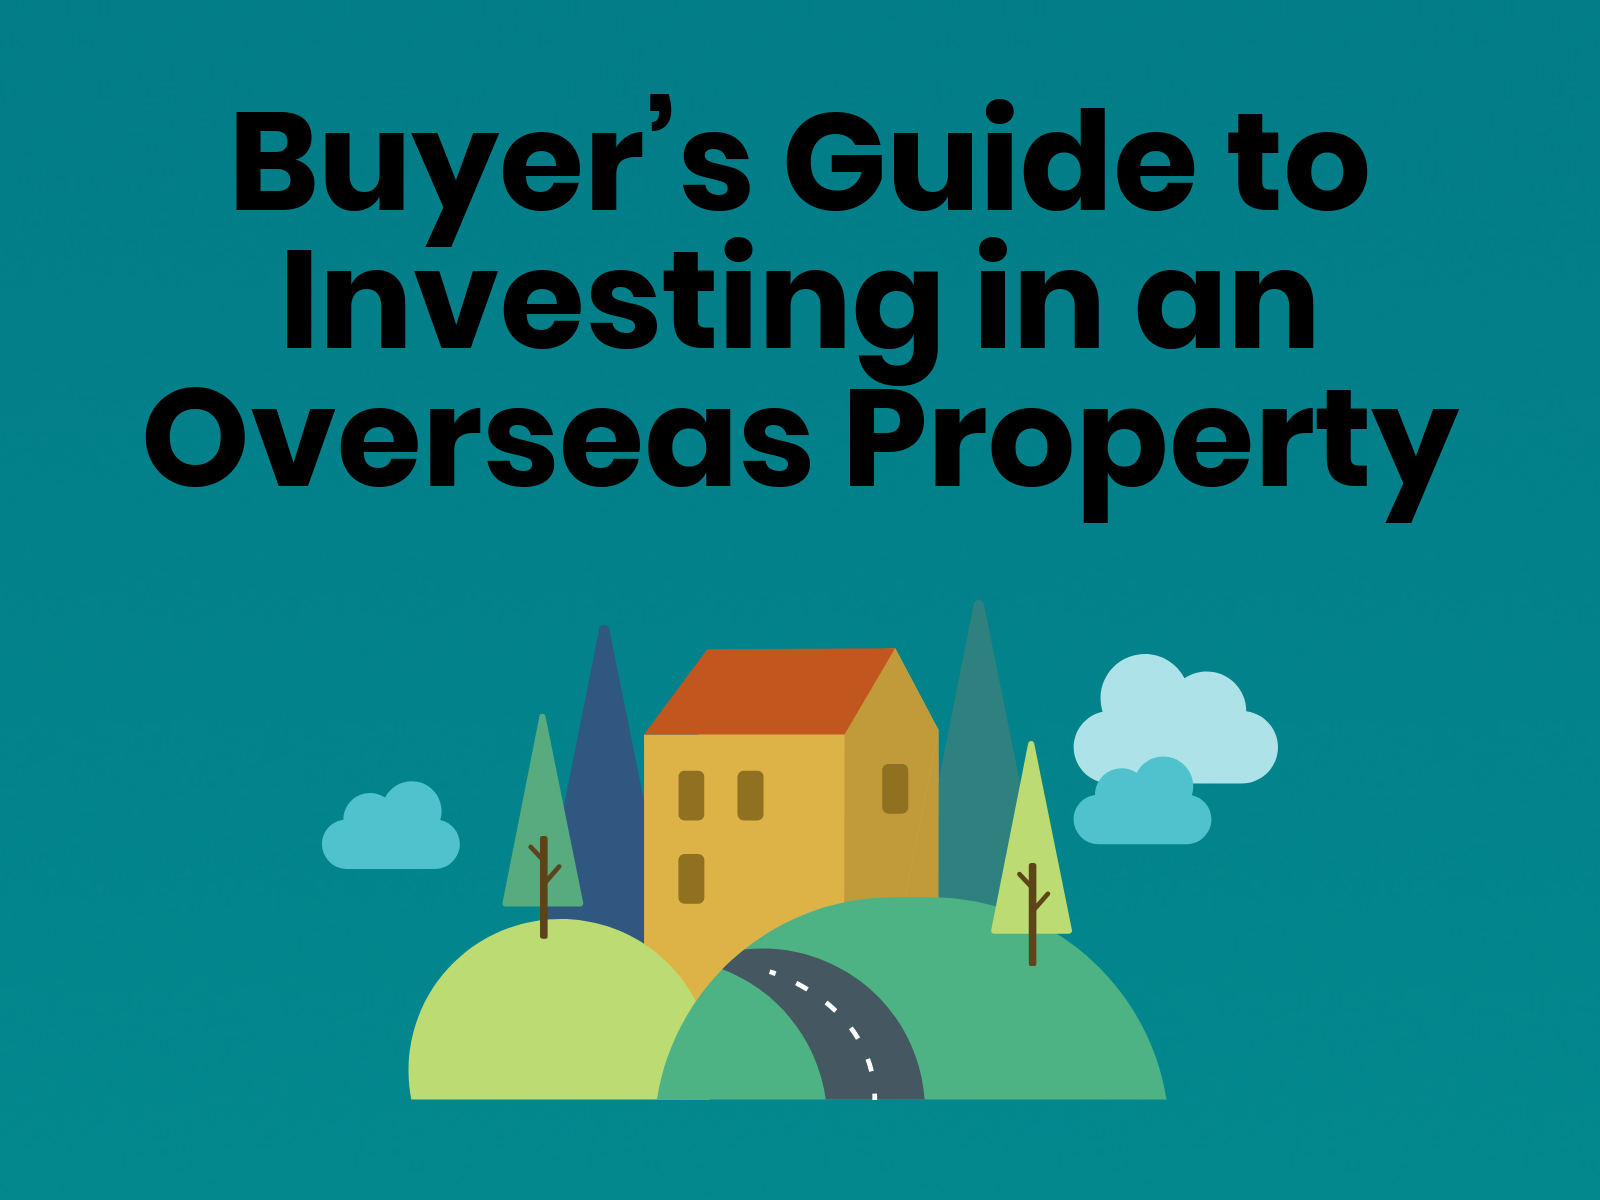 Buyers guide to investing in an overseas property